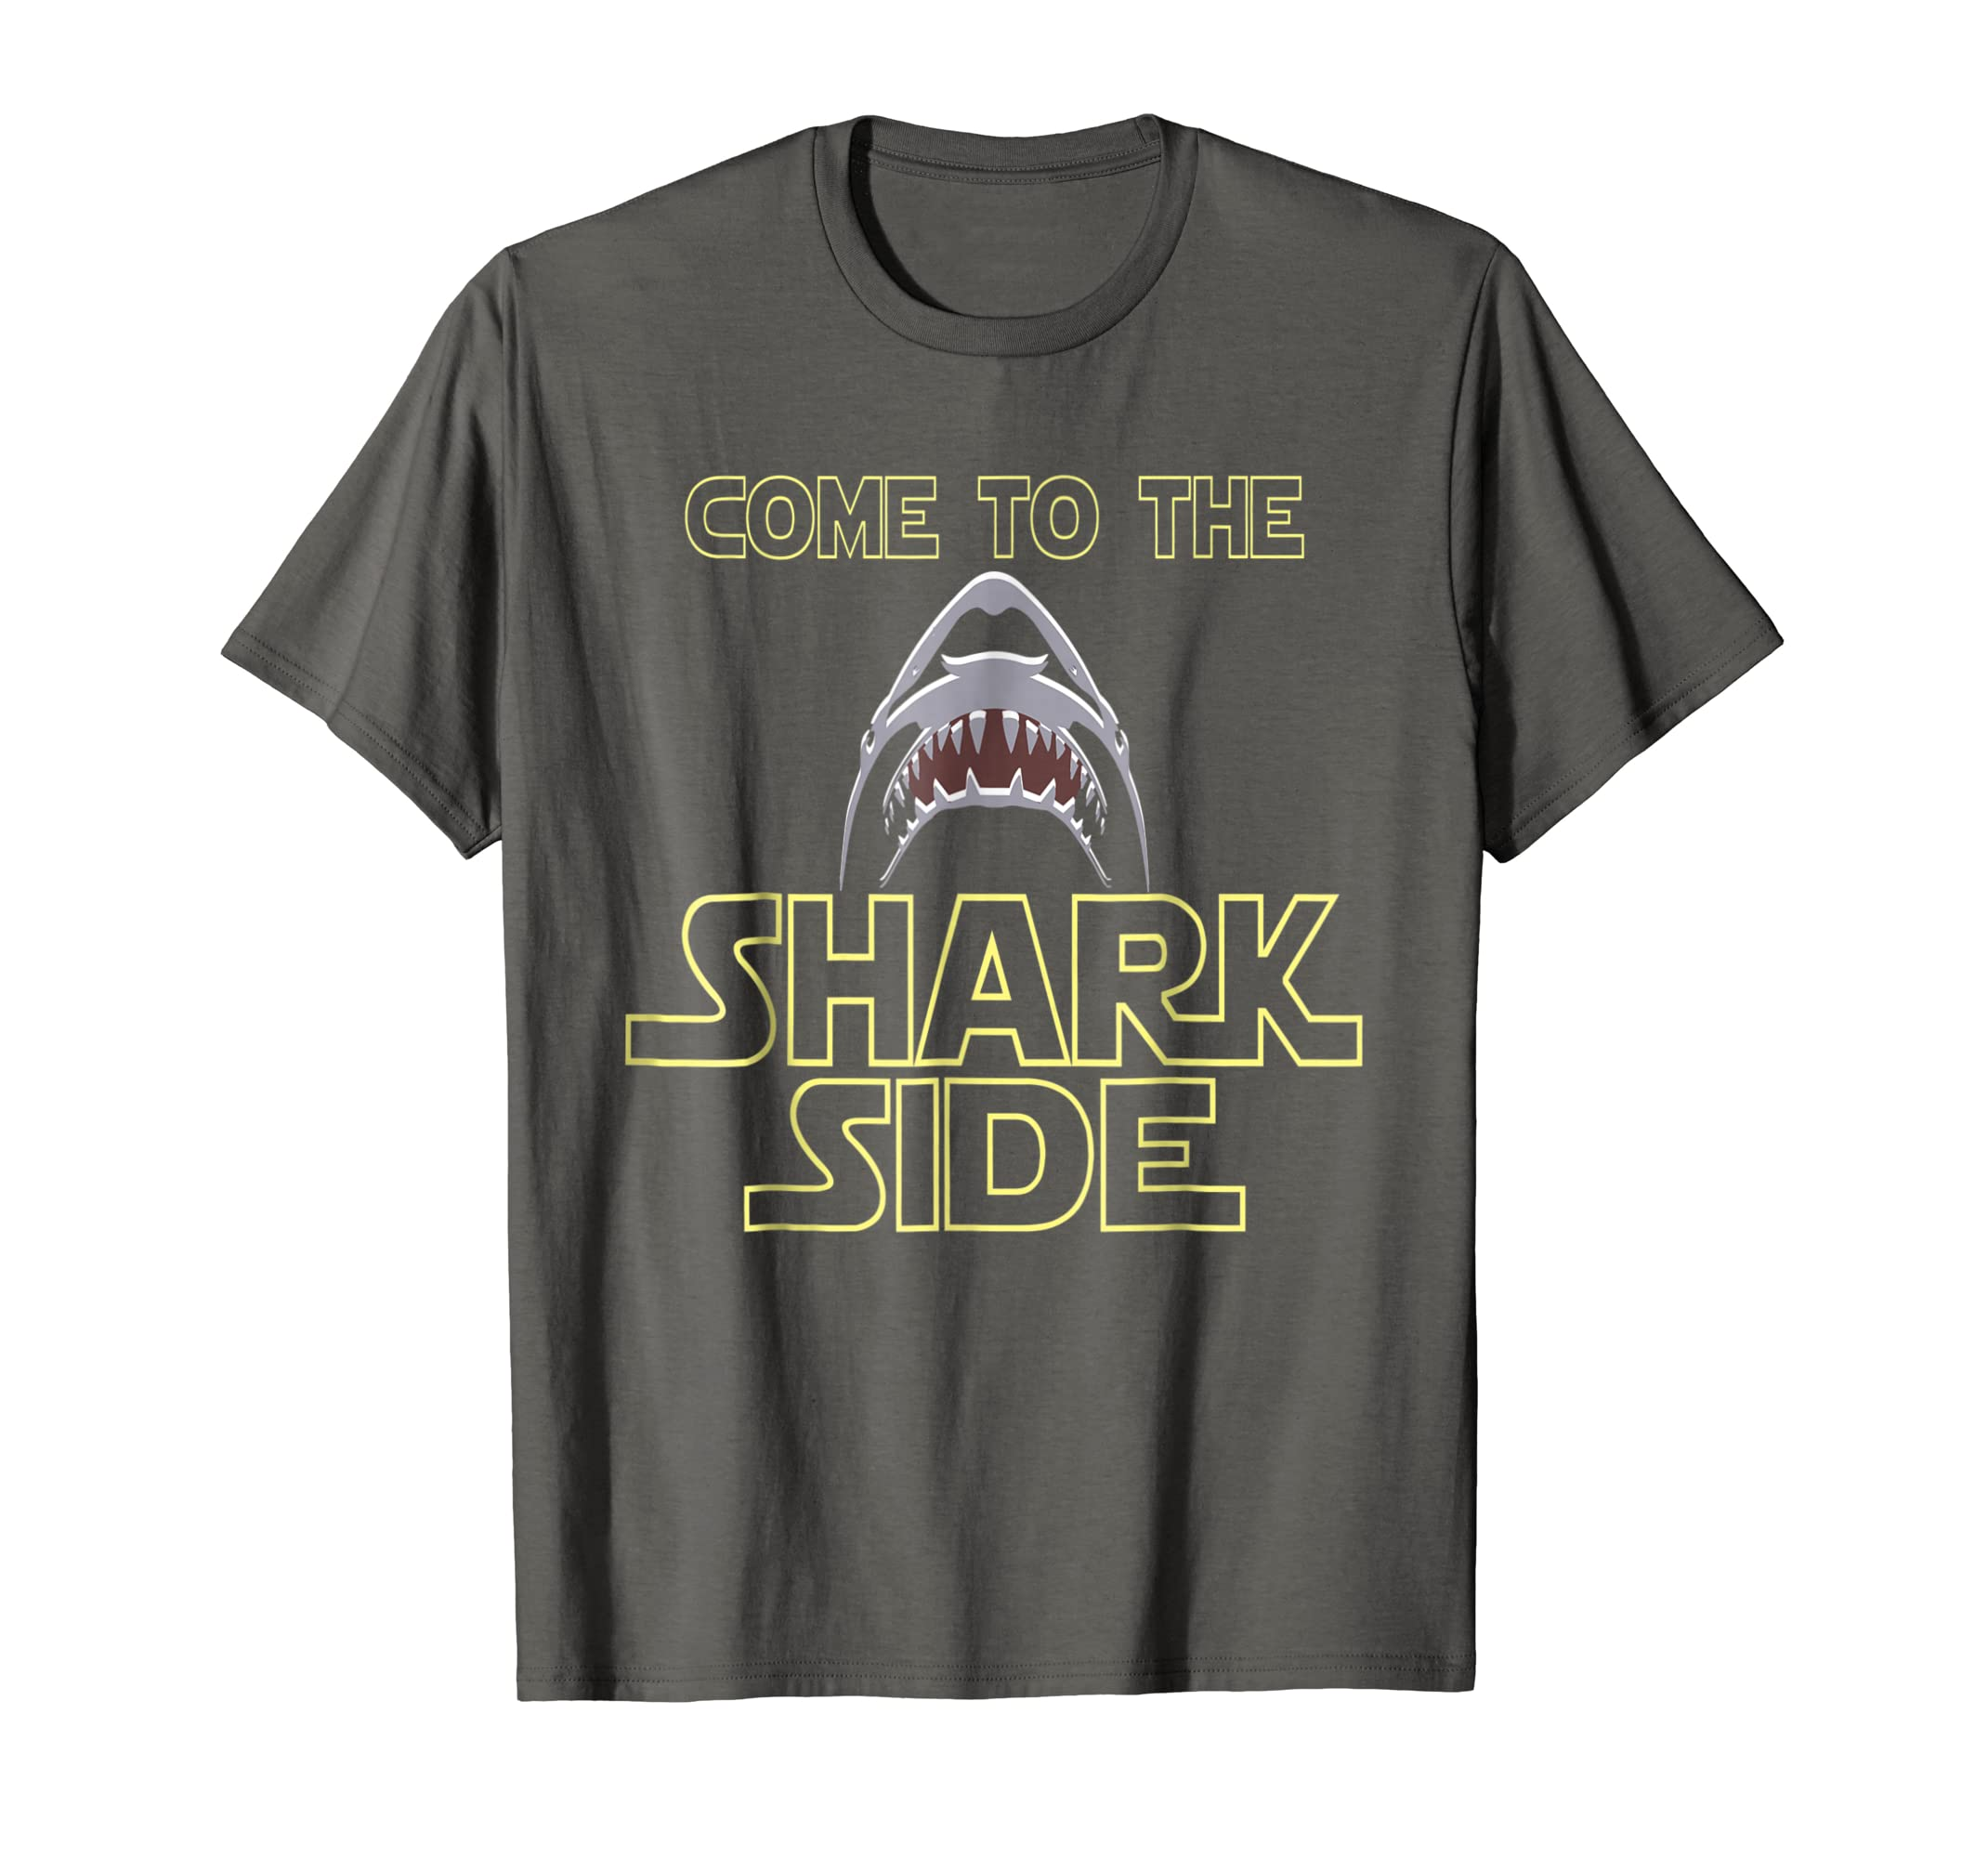 fdb77d5ed Amazon.com: Great White Shark Shirt For Shark Lovers T-Shirt: Clothing